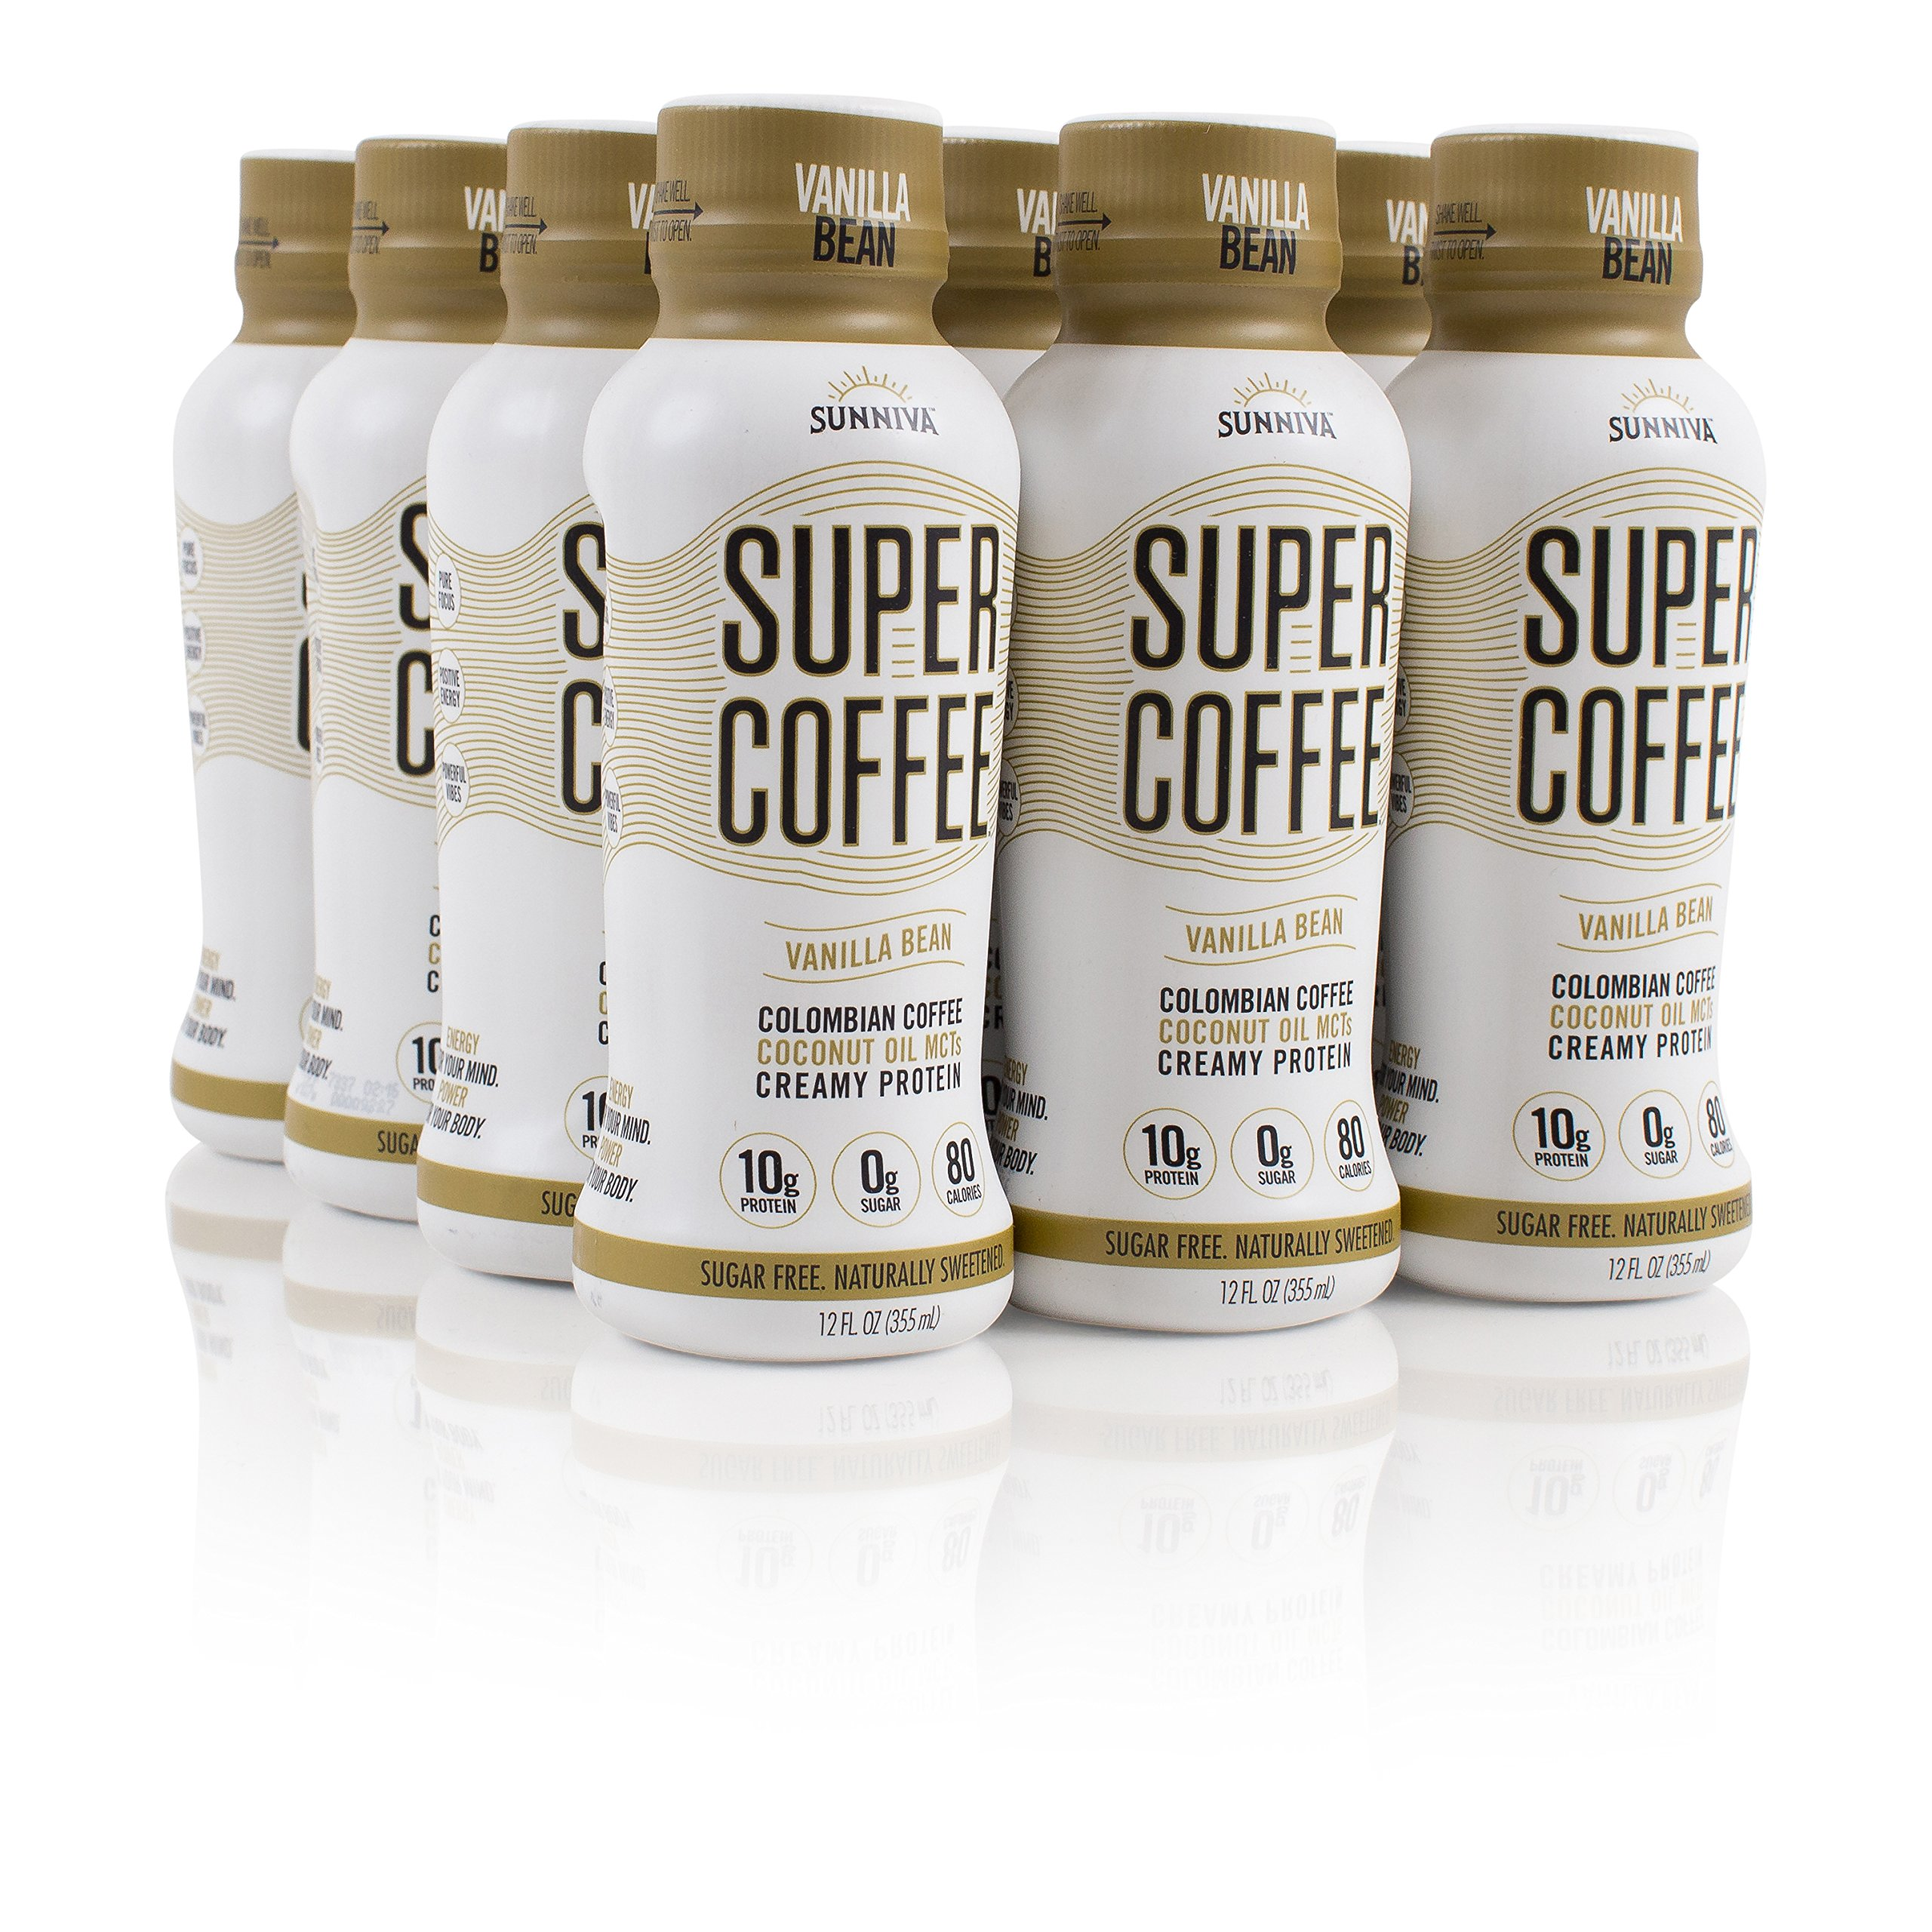 SUNNIVA Super Coffee 4 Variety Pack NEW Sugar-Free Formula, 10g ...